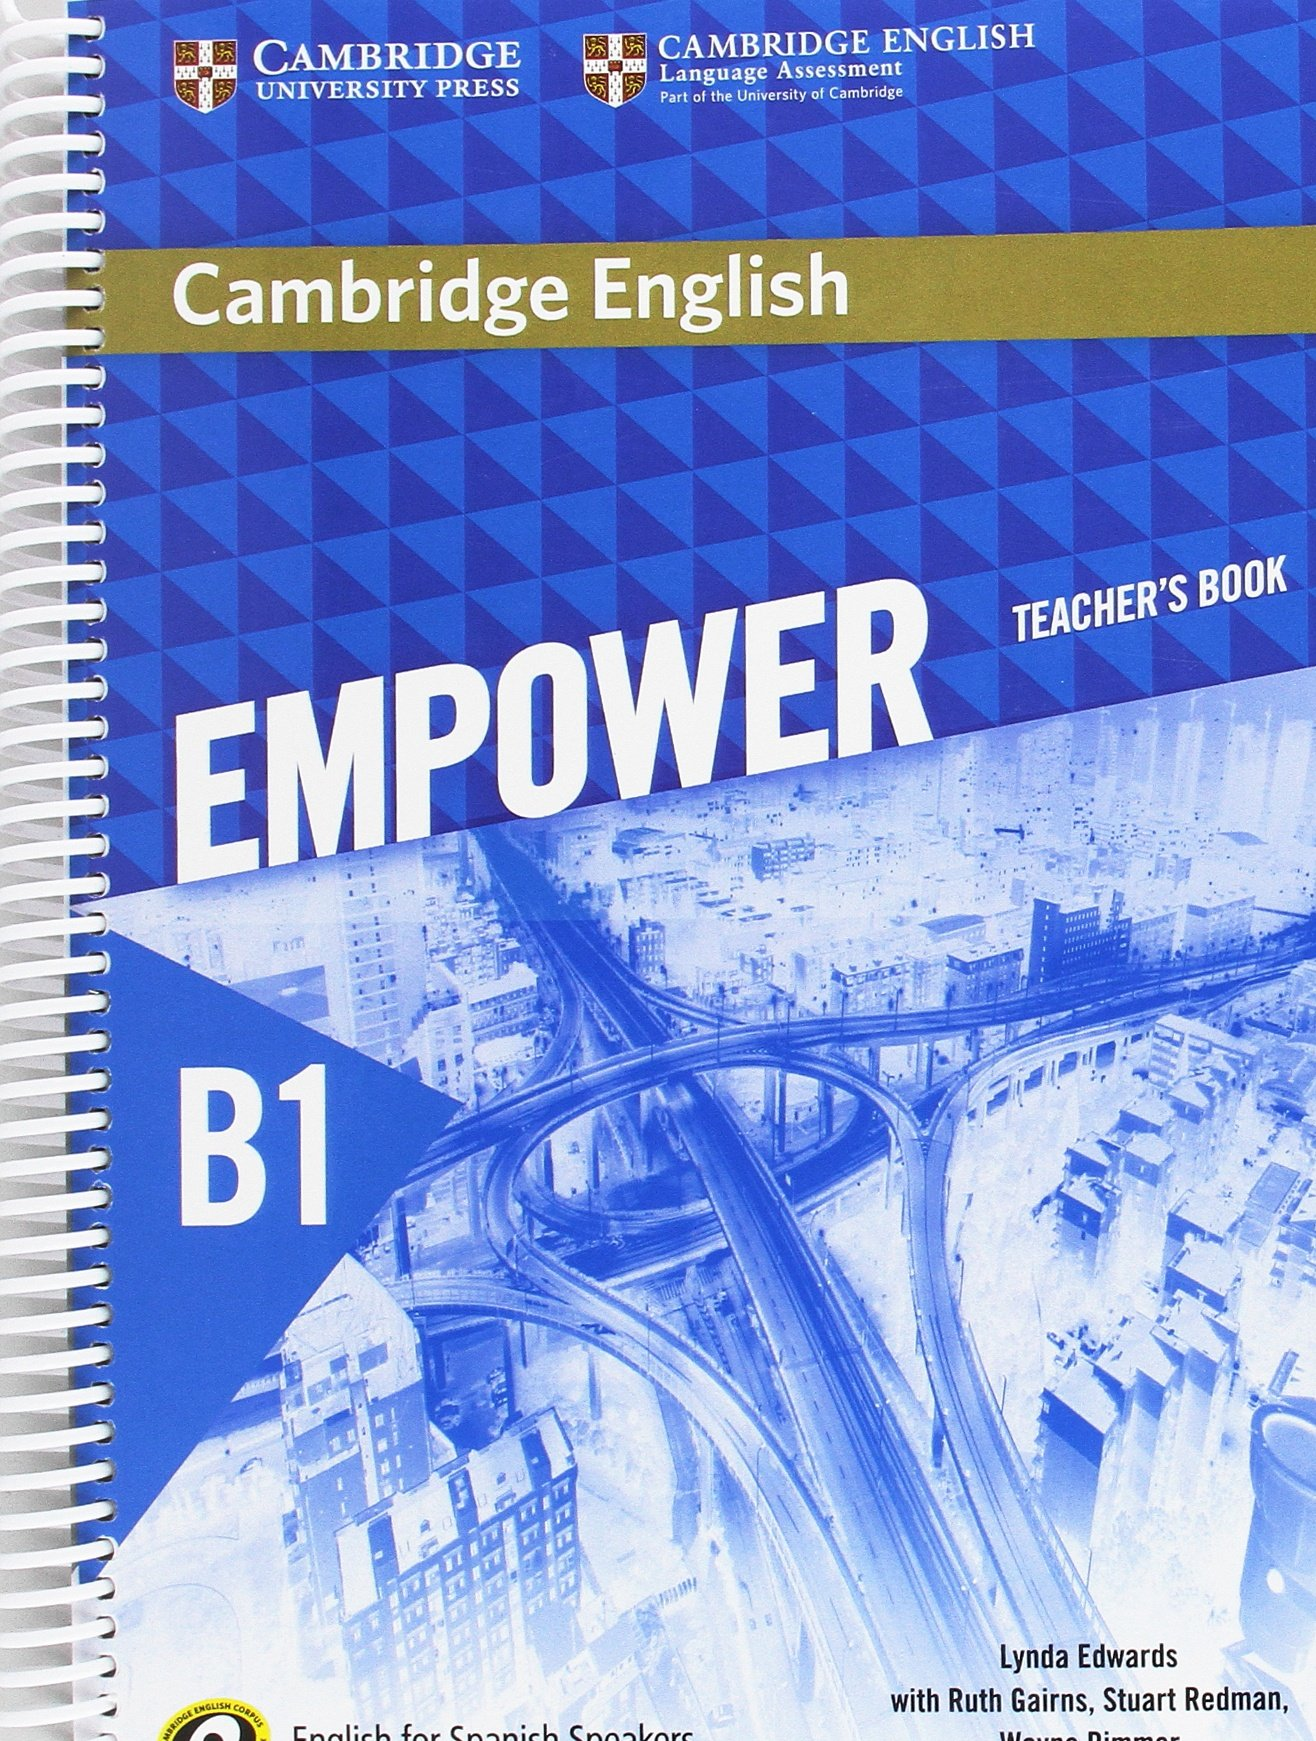 Cambridge English Empower for Spanish Speakers B1 Teachers Book: Amazon.es: Edwards, Lynda, Gairns, Ruth, Redman, Stuart, Rimmer, Wayne: Libros en idiomas extranjeros